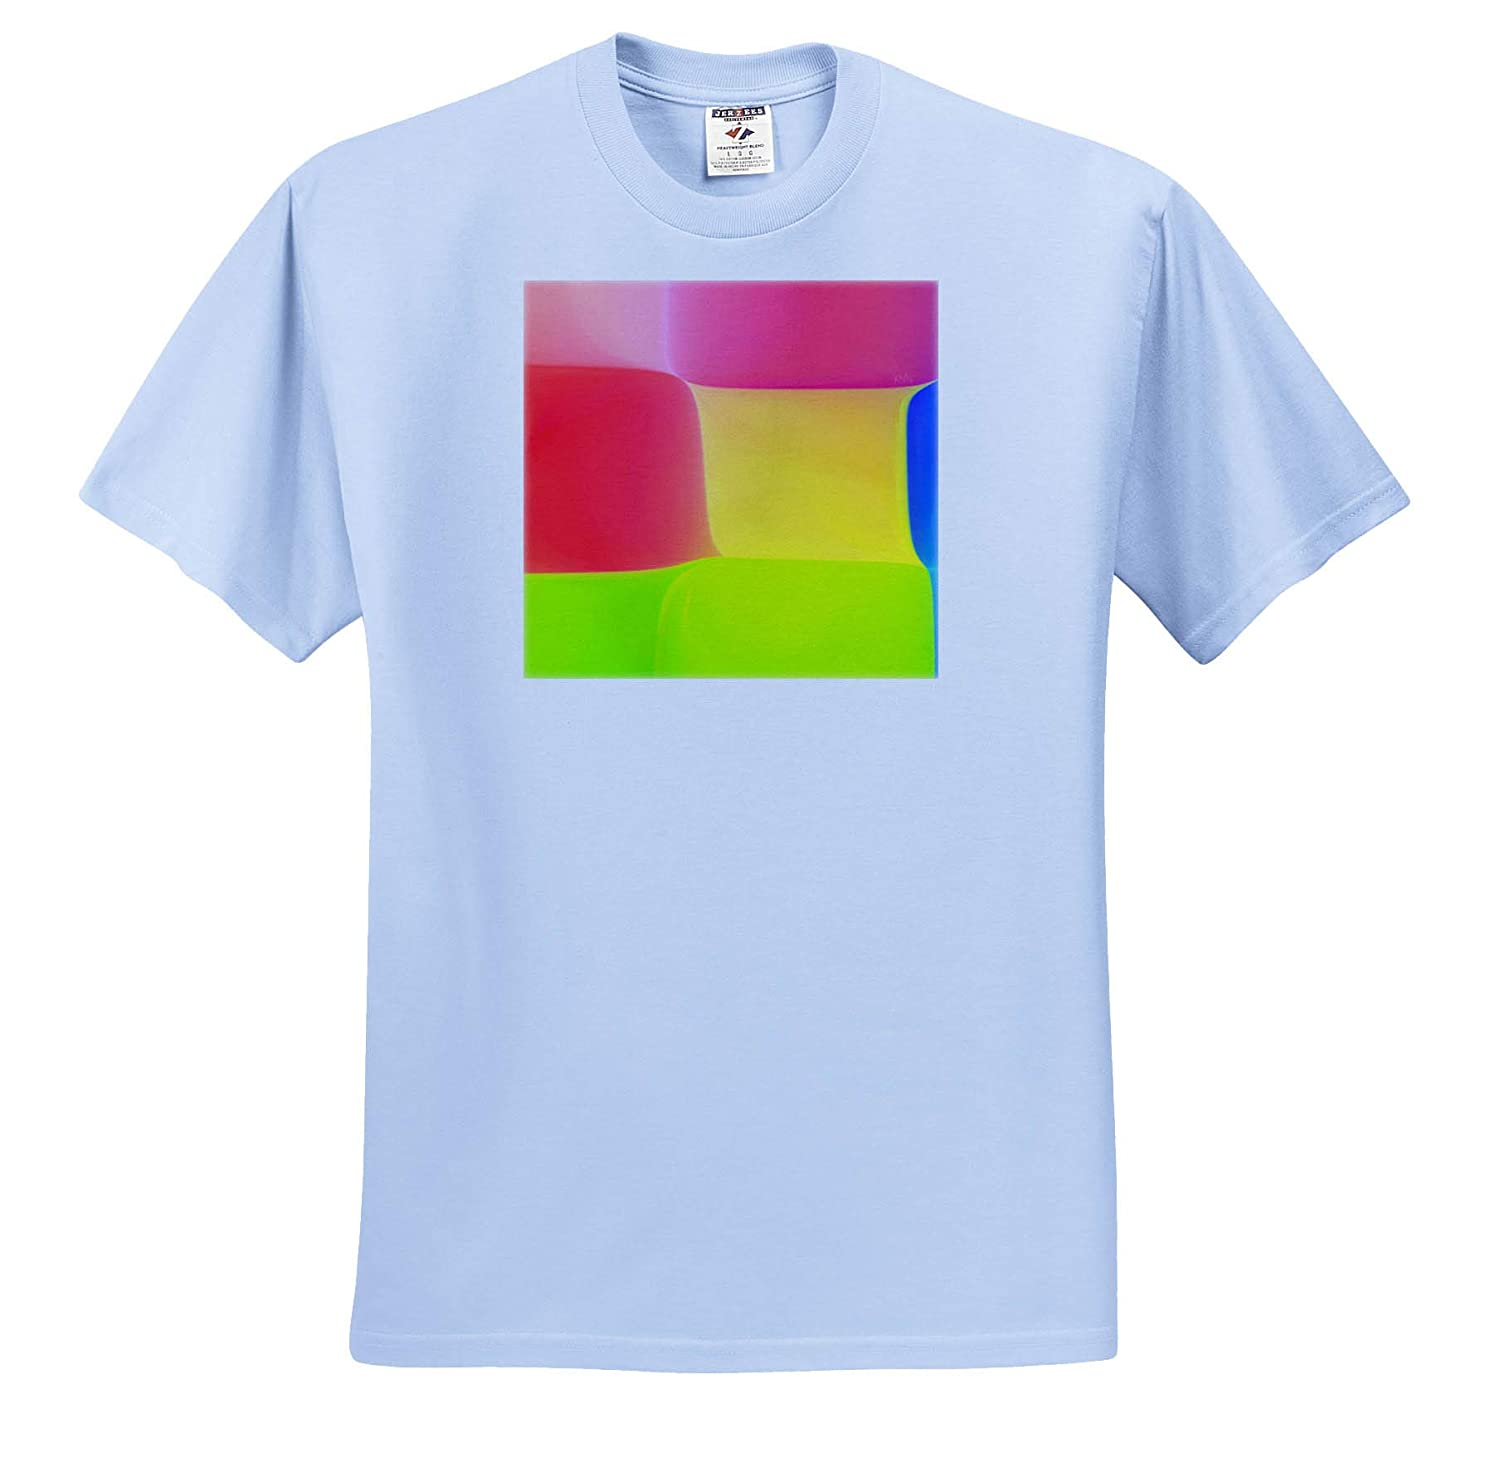 3dRose RVig Generative Artworks Medium red Yellow and Green Squares Color Chessboard T-Shirts